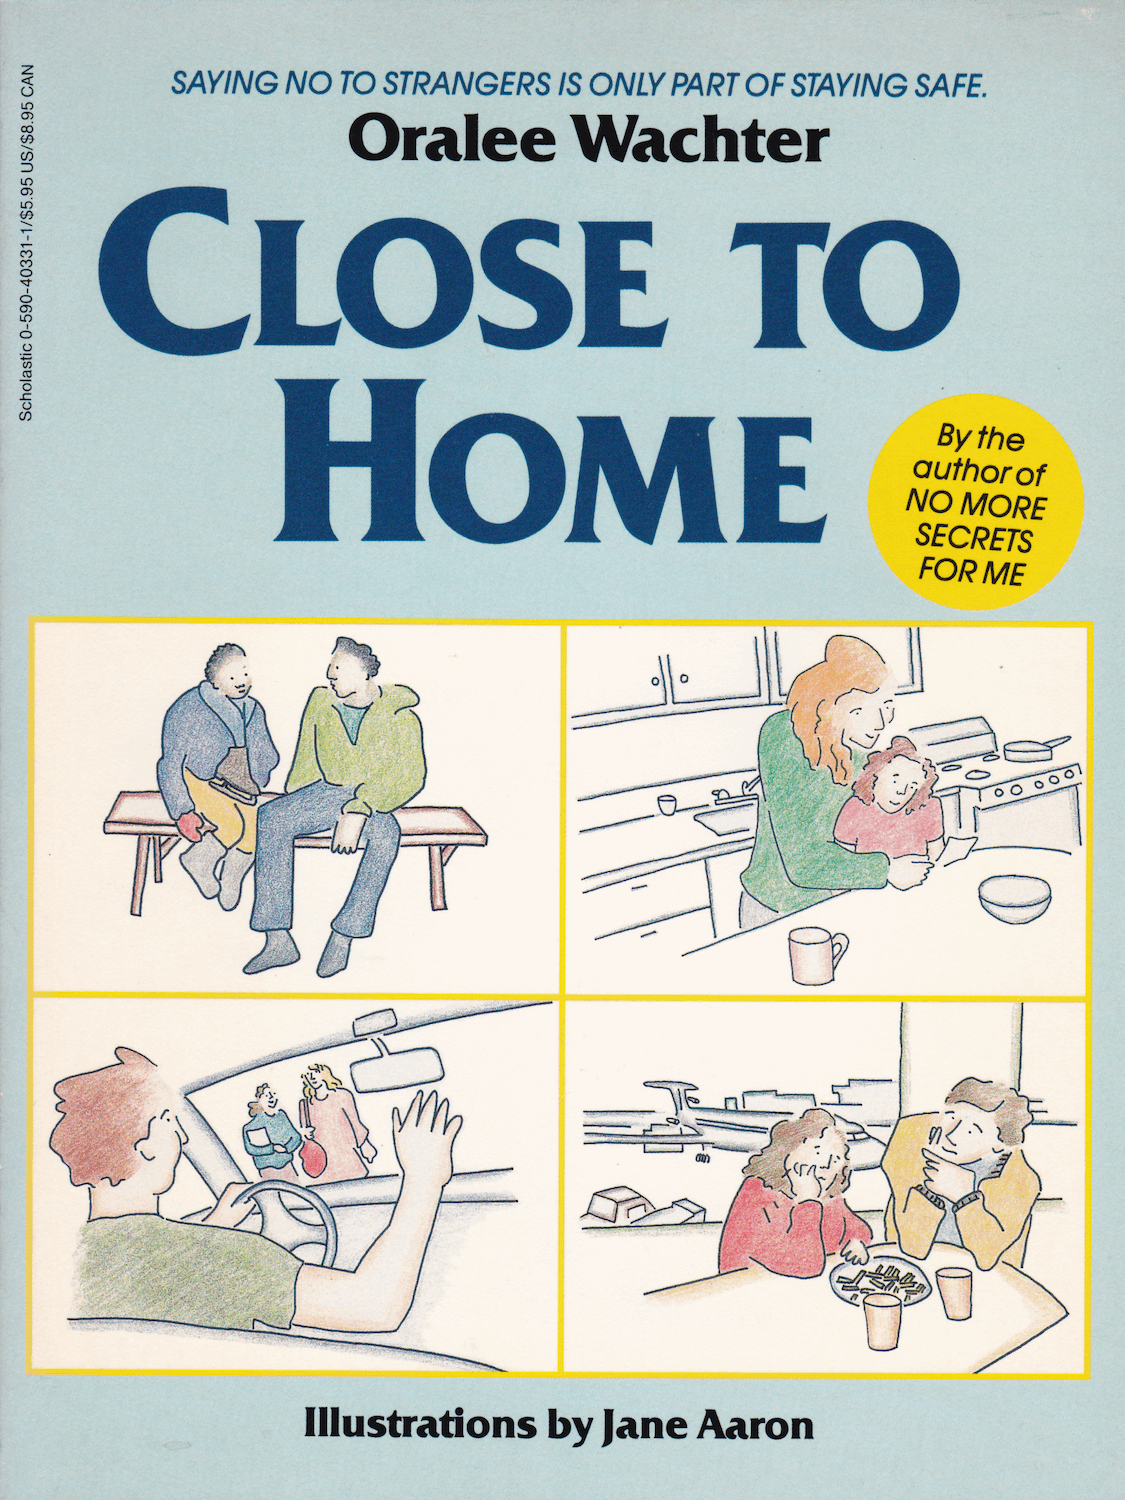 """Close to Home""  by Oralee Wachter, with Illustrations by Jane Aaron"